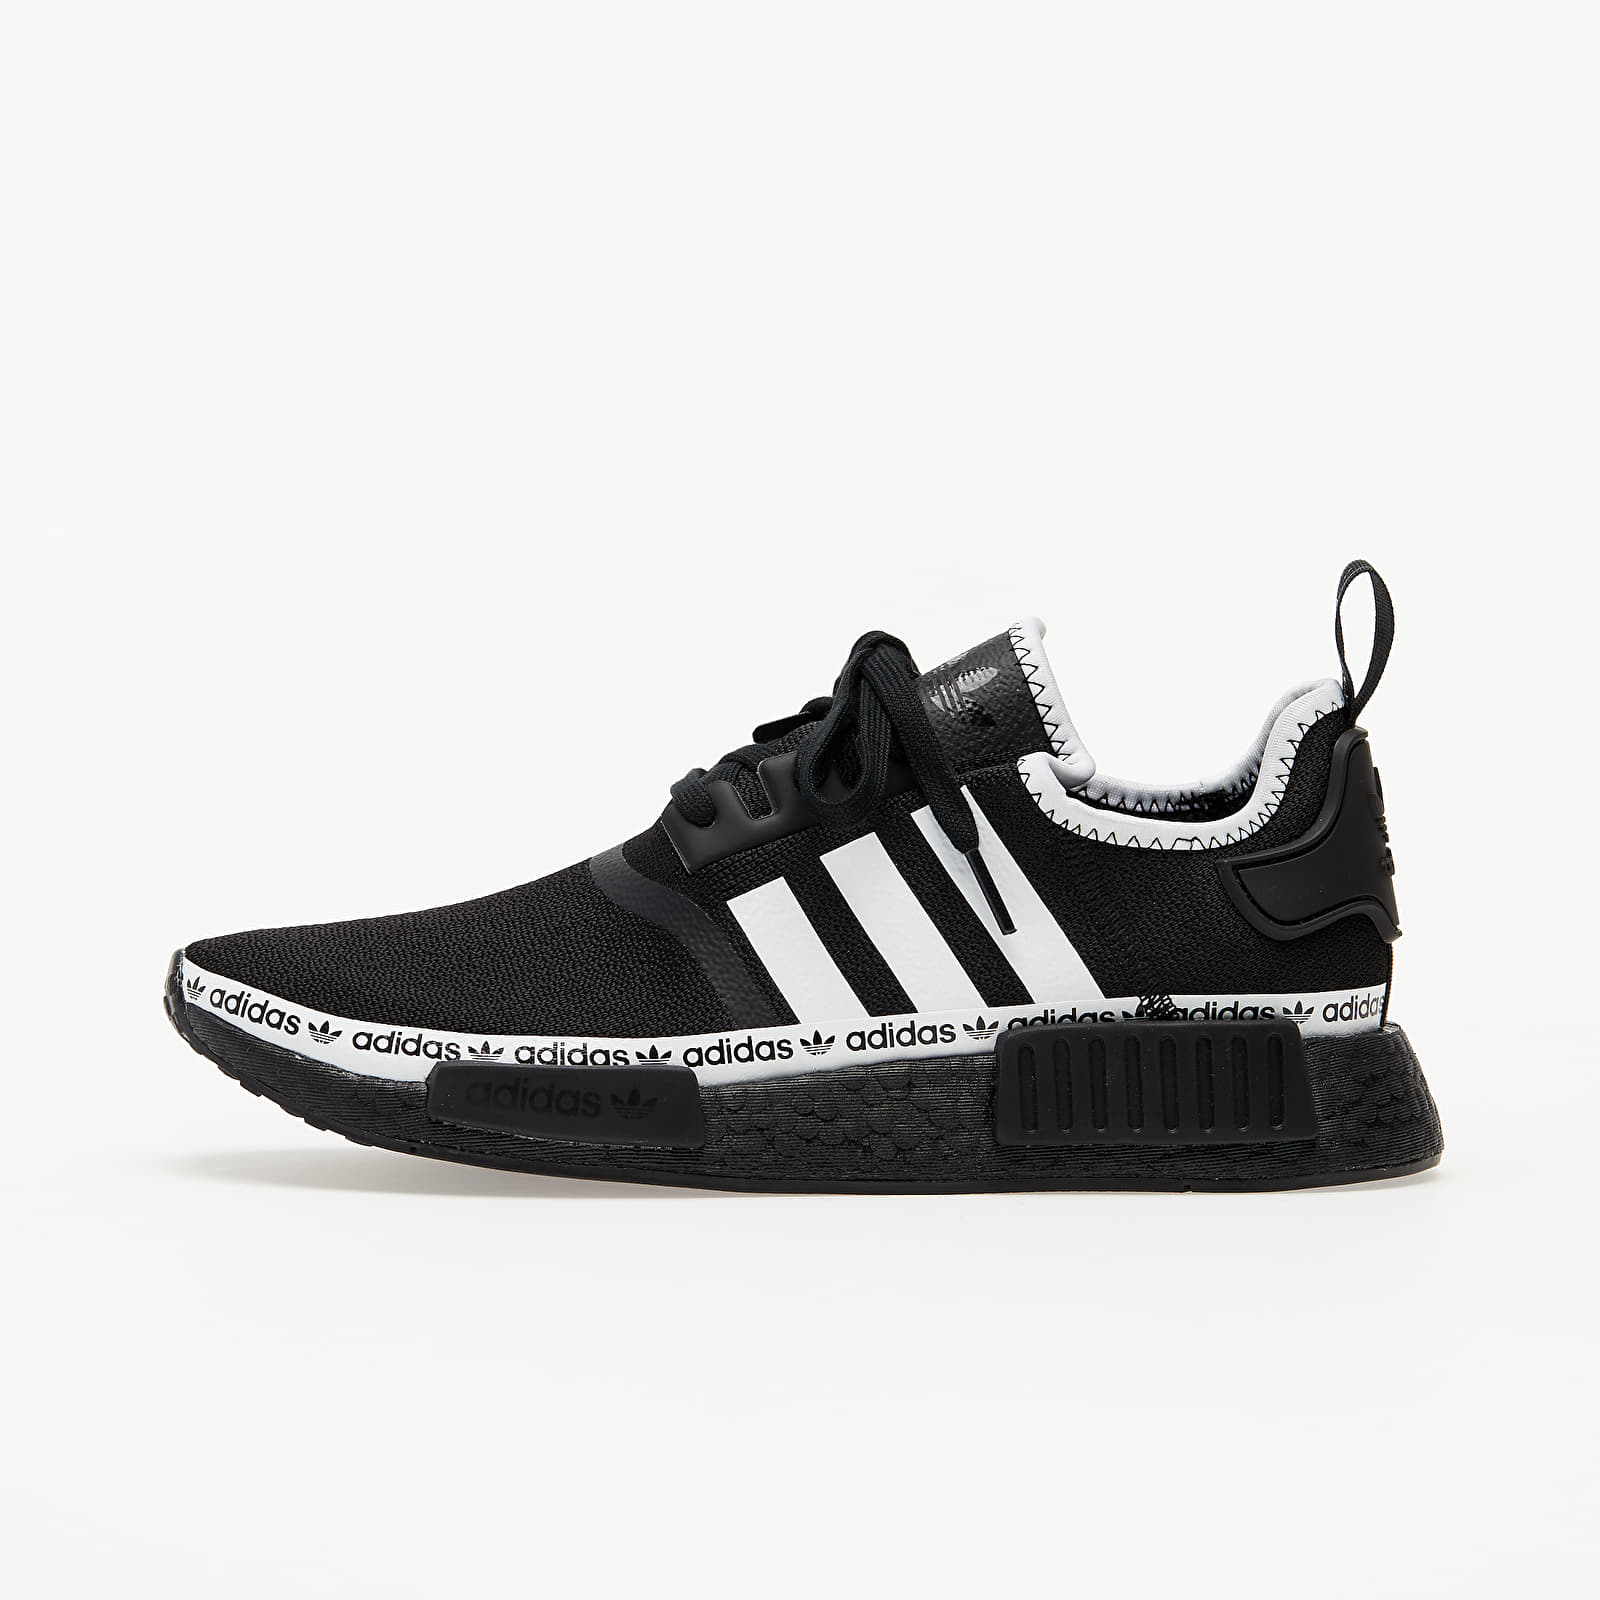 adidas NMD_R1 Core Black/ Ftw White/ Ftw White FV8729